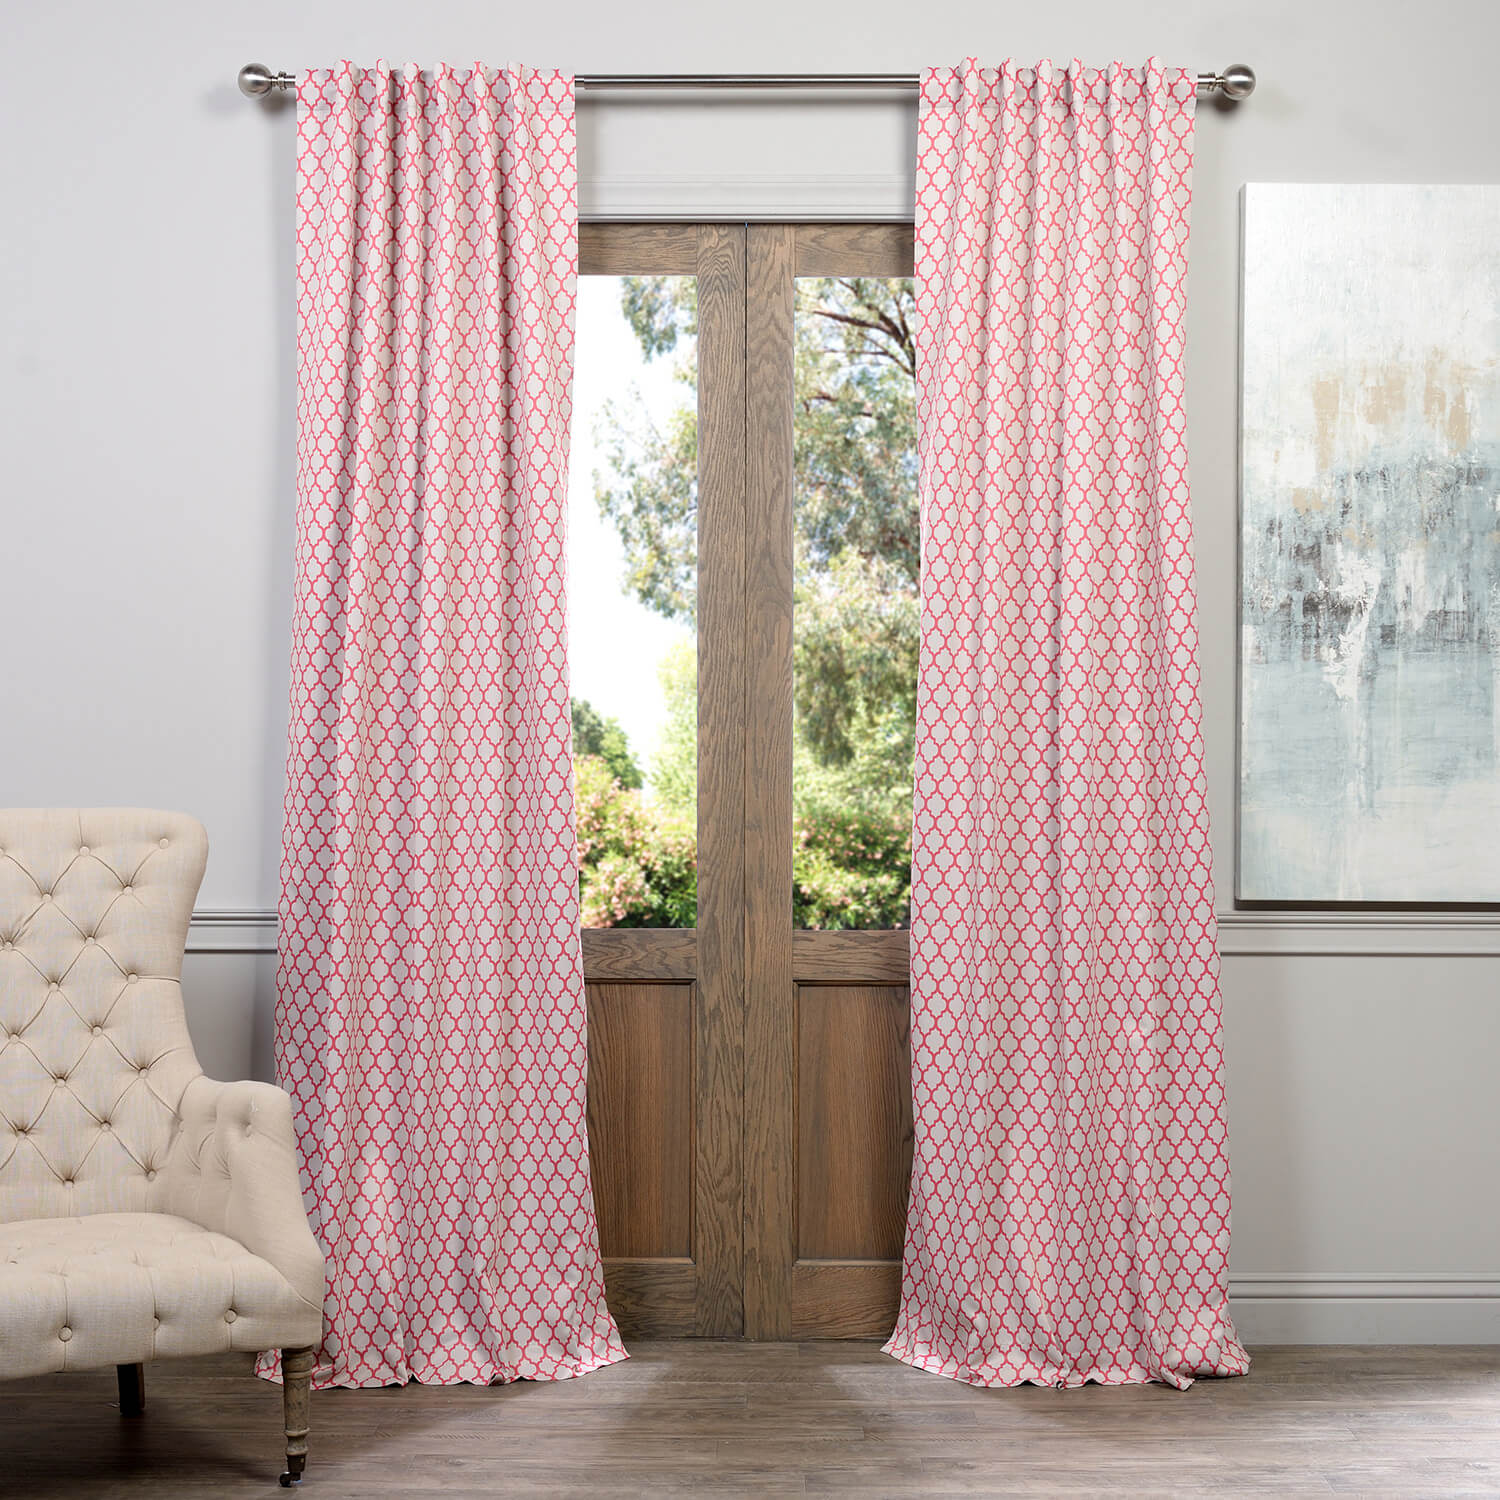 Casablanca Rose Blackout Curtain